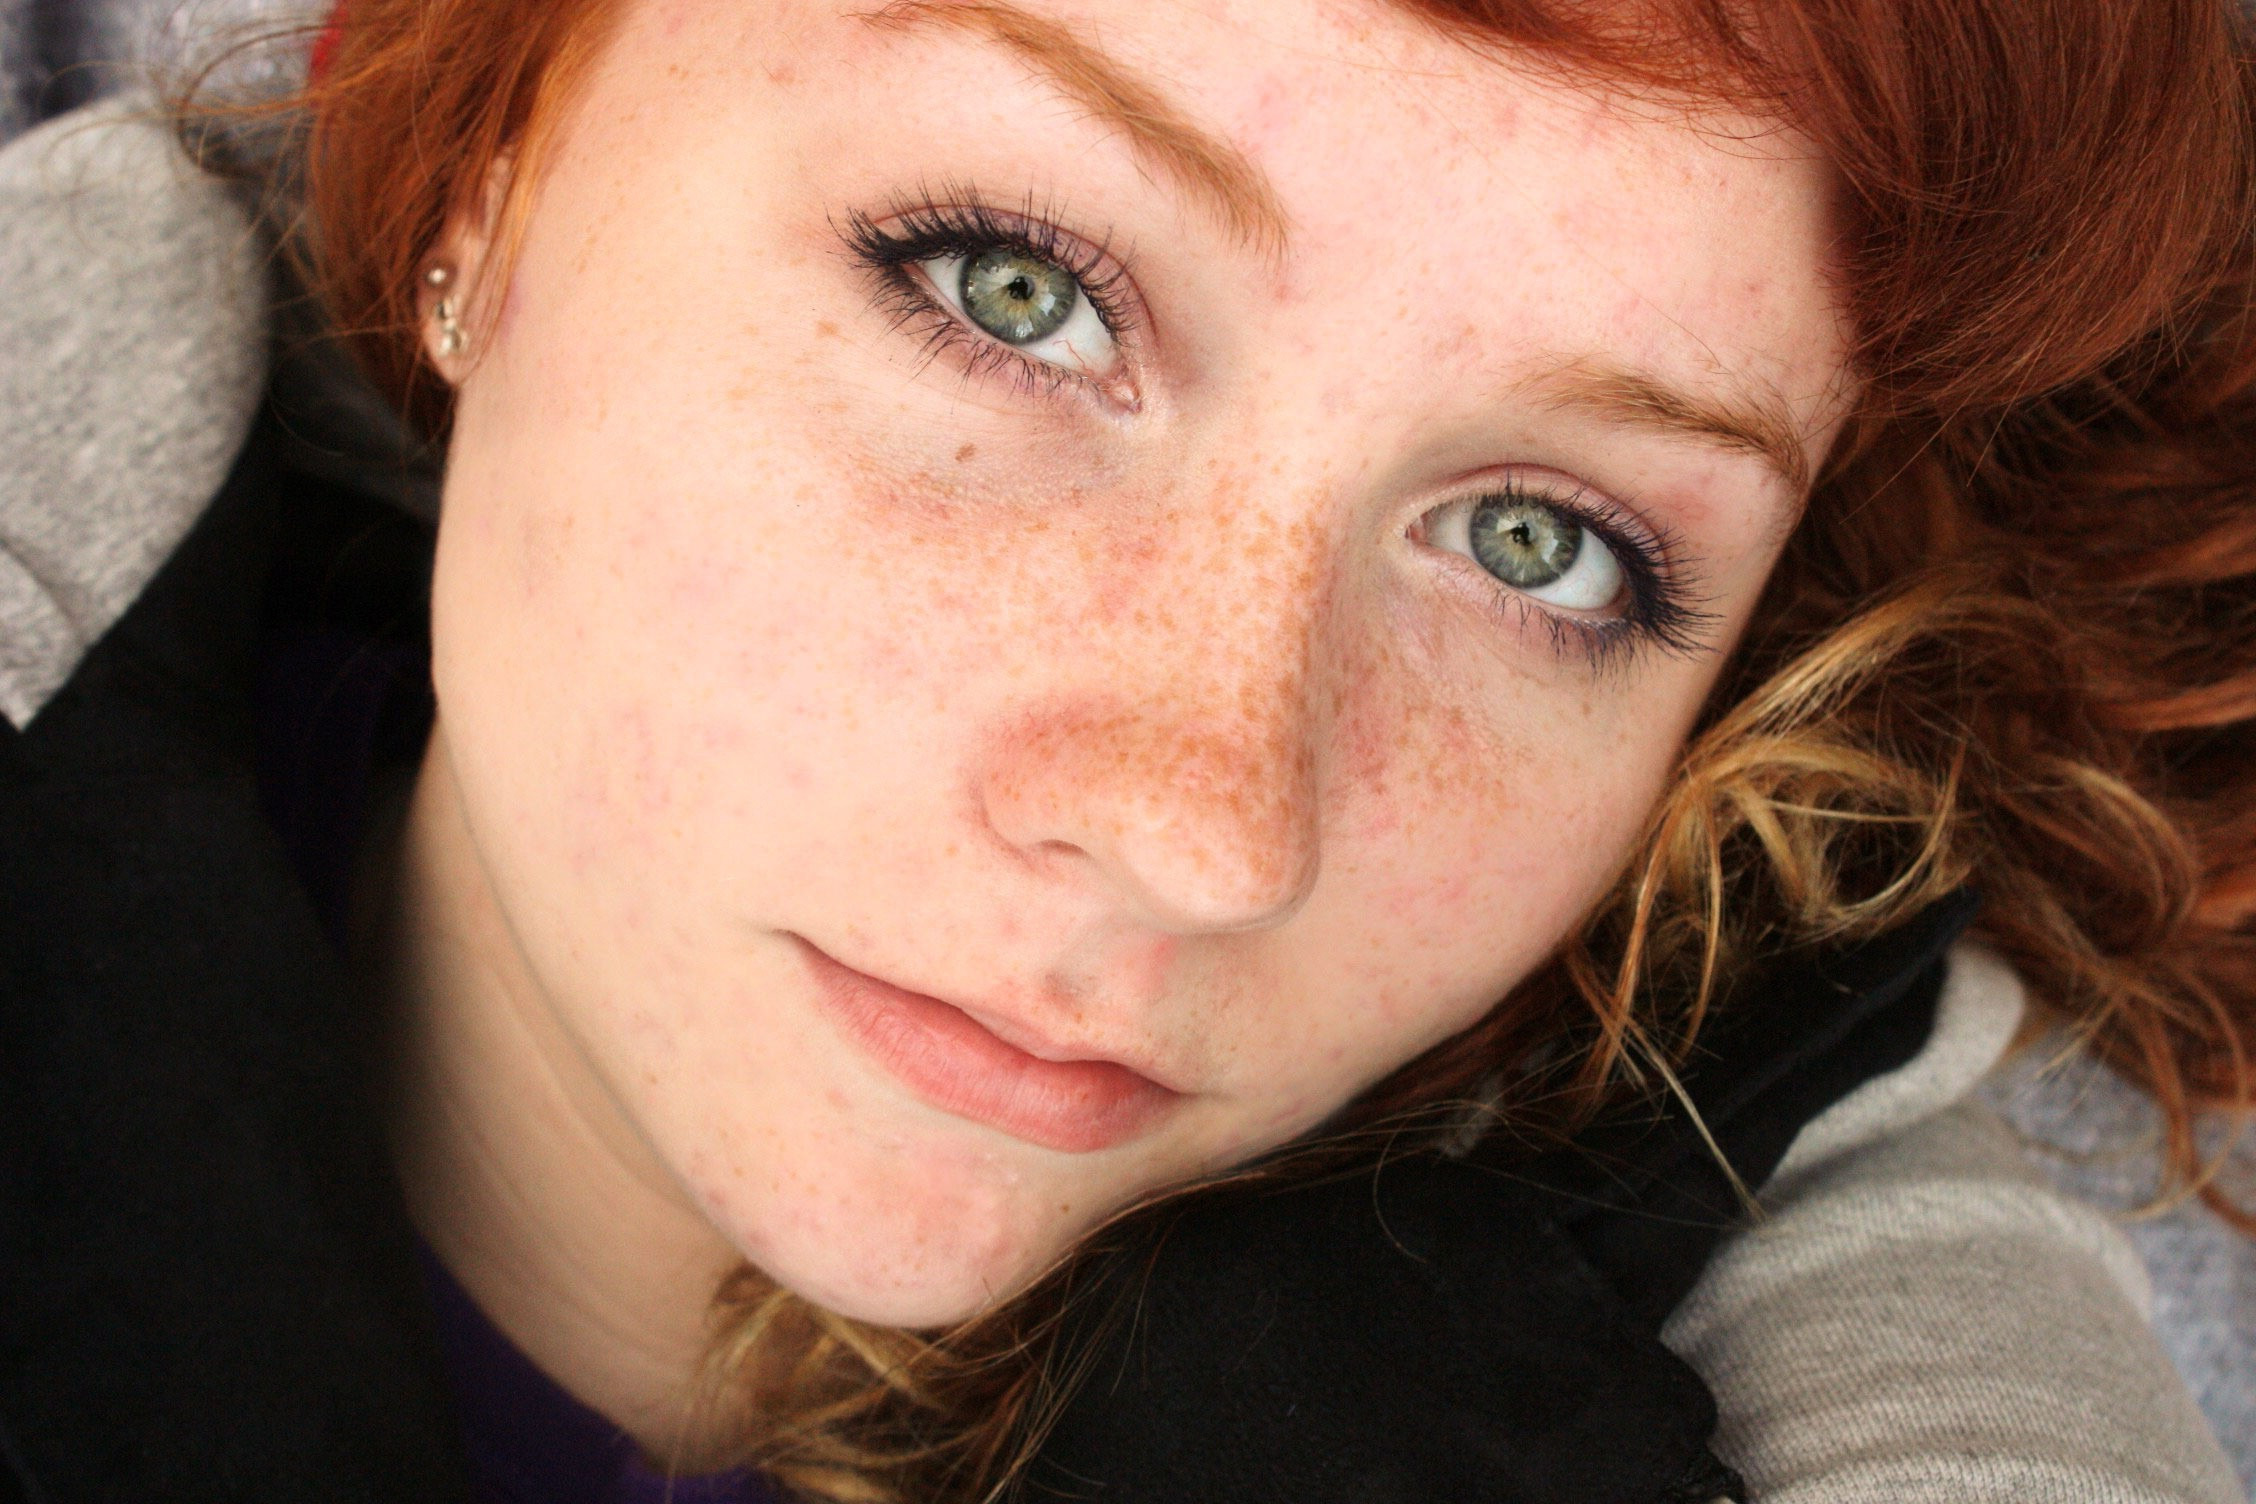 freckled pussy tumblr